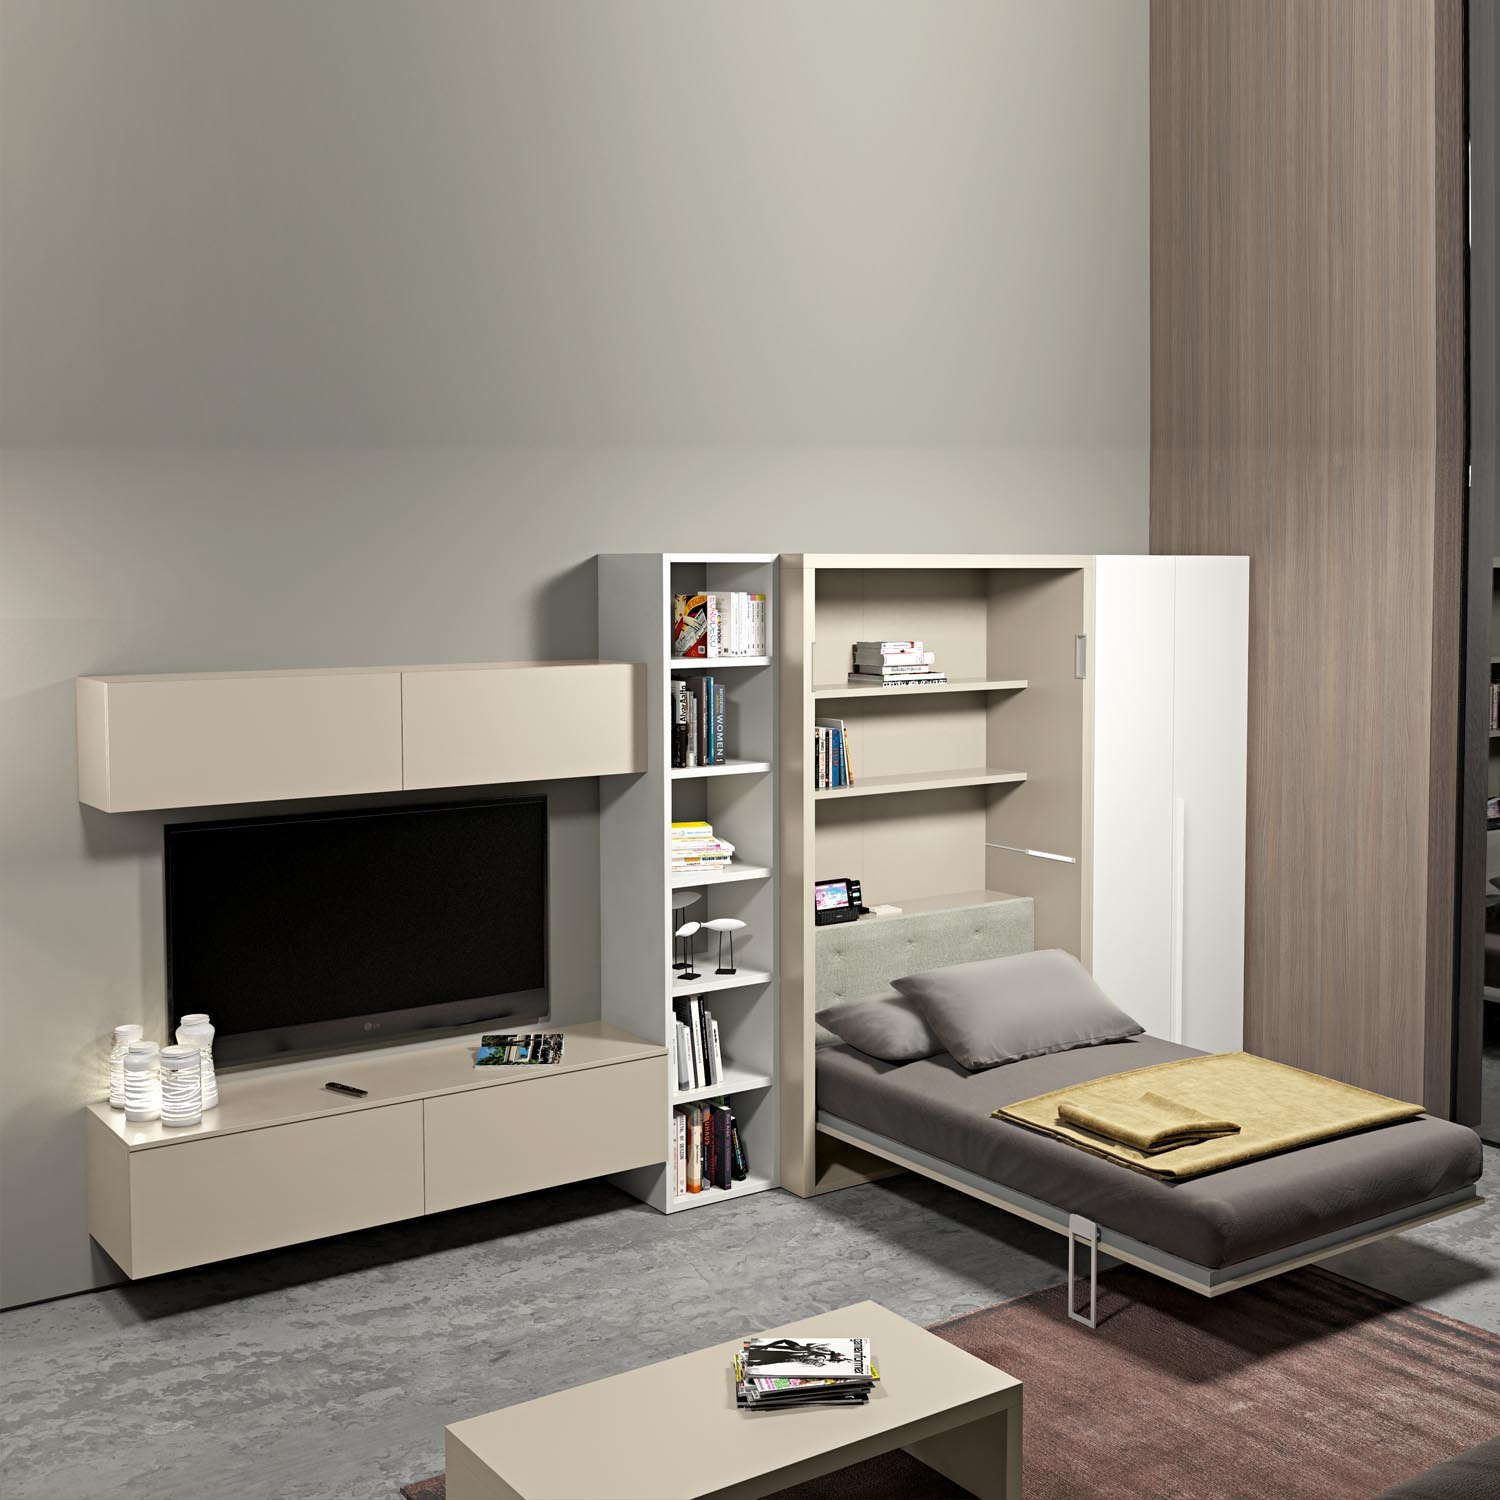 Modular furniture for small spaces homesfeed - Small space convertible furniture image ...